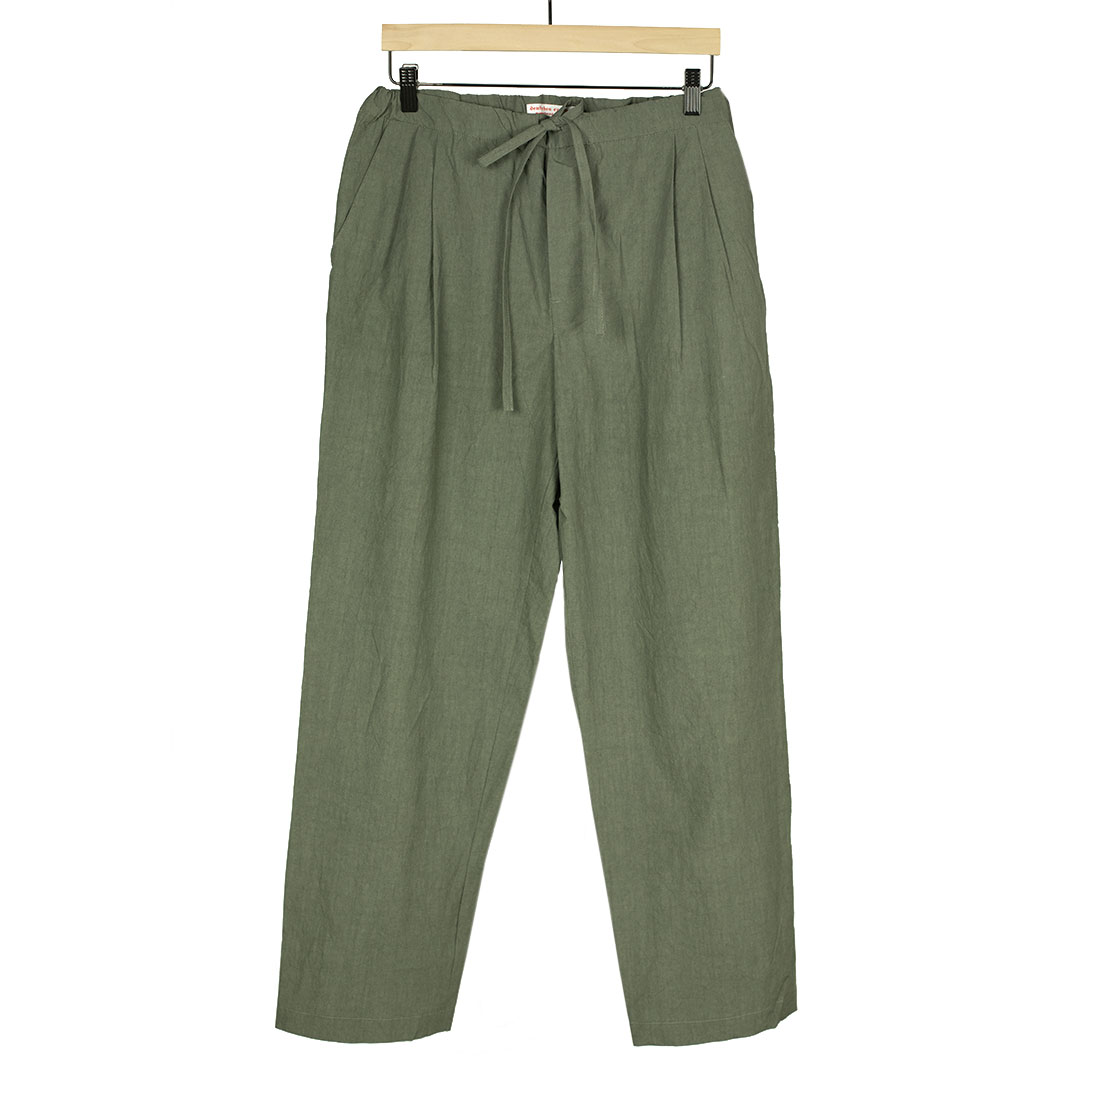 Frank Leder Spring Summer 2021 SS21 Made in Germany lightweight drawstring pleated trousers (8).jpg